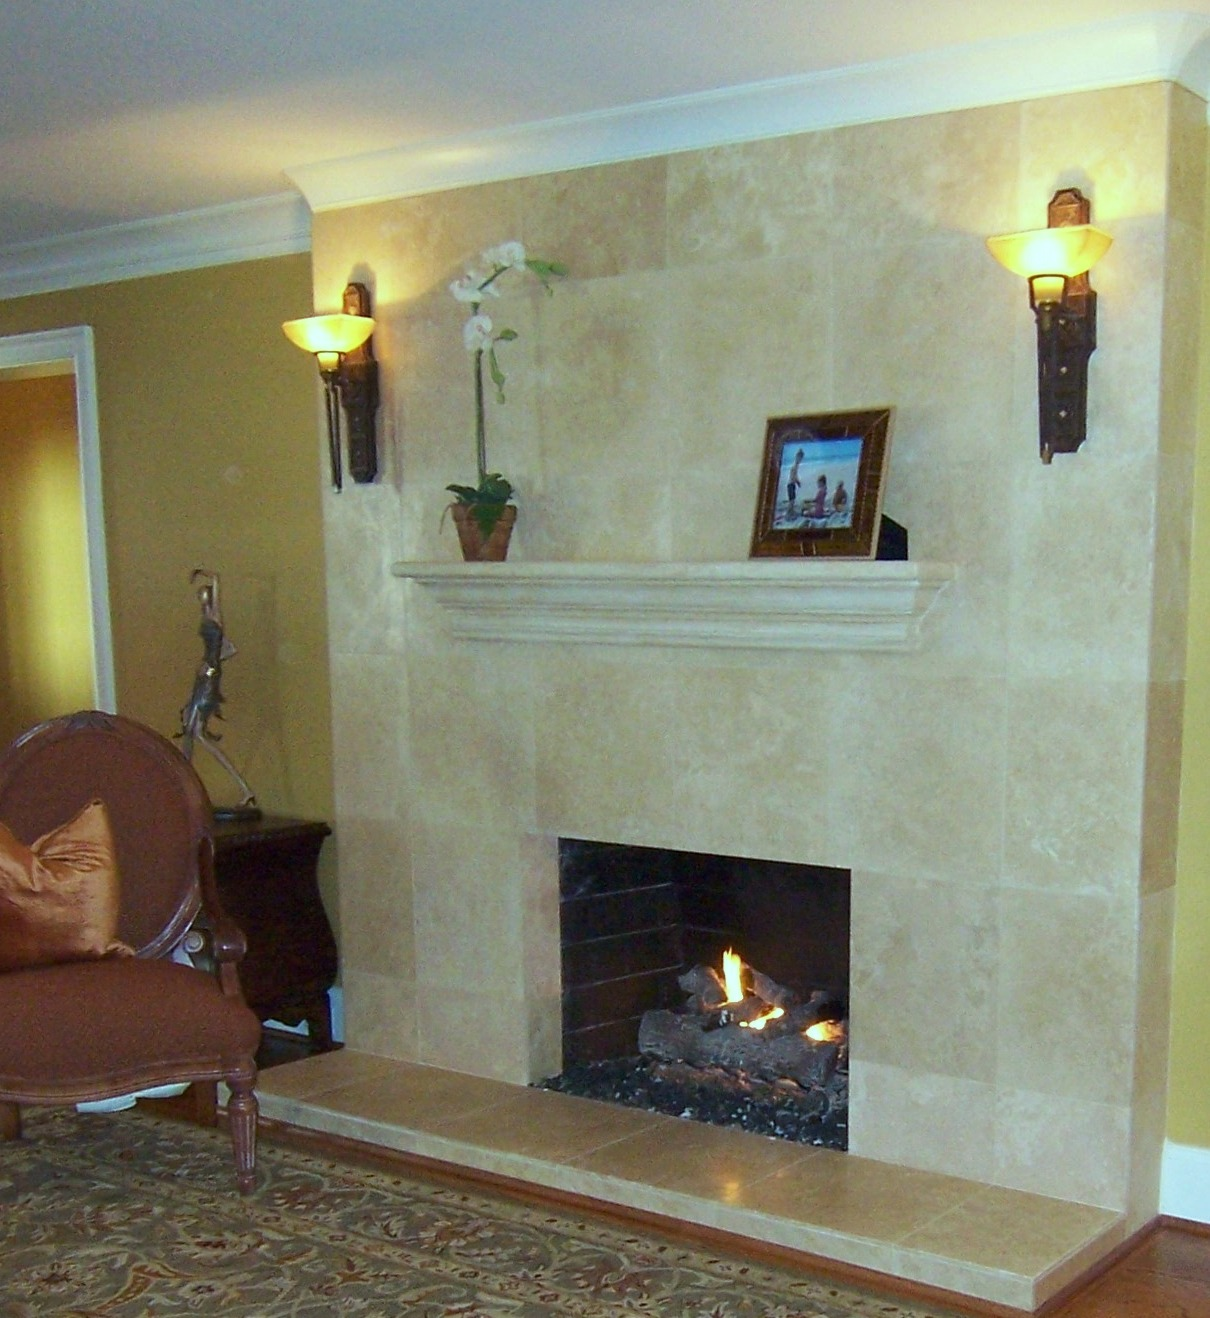 This Homeowner Preferred To Reface Their Brick Fireplace We Installed Limestone Tiles From Floor Ceiling Make The 8 Ceilings Feel Taller